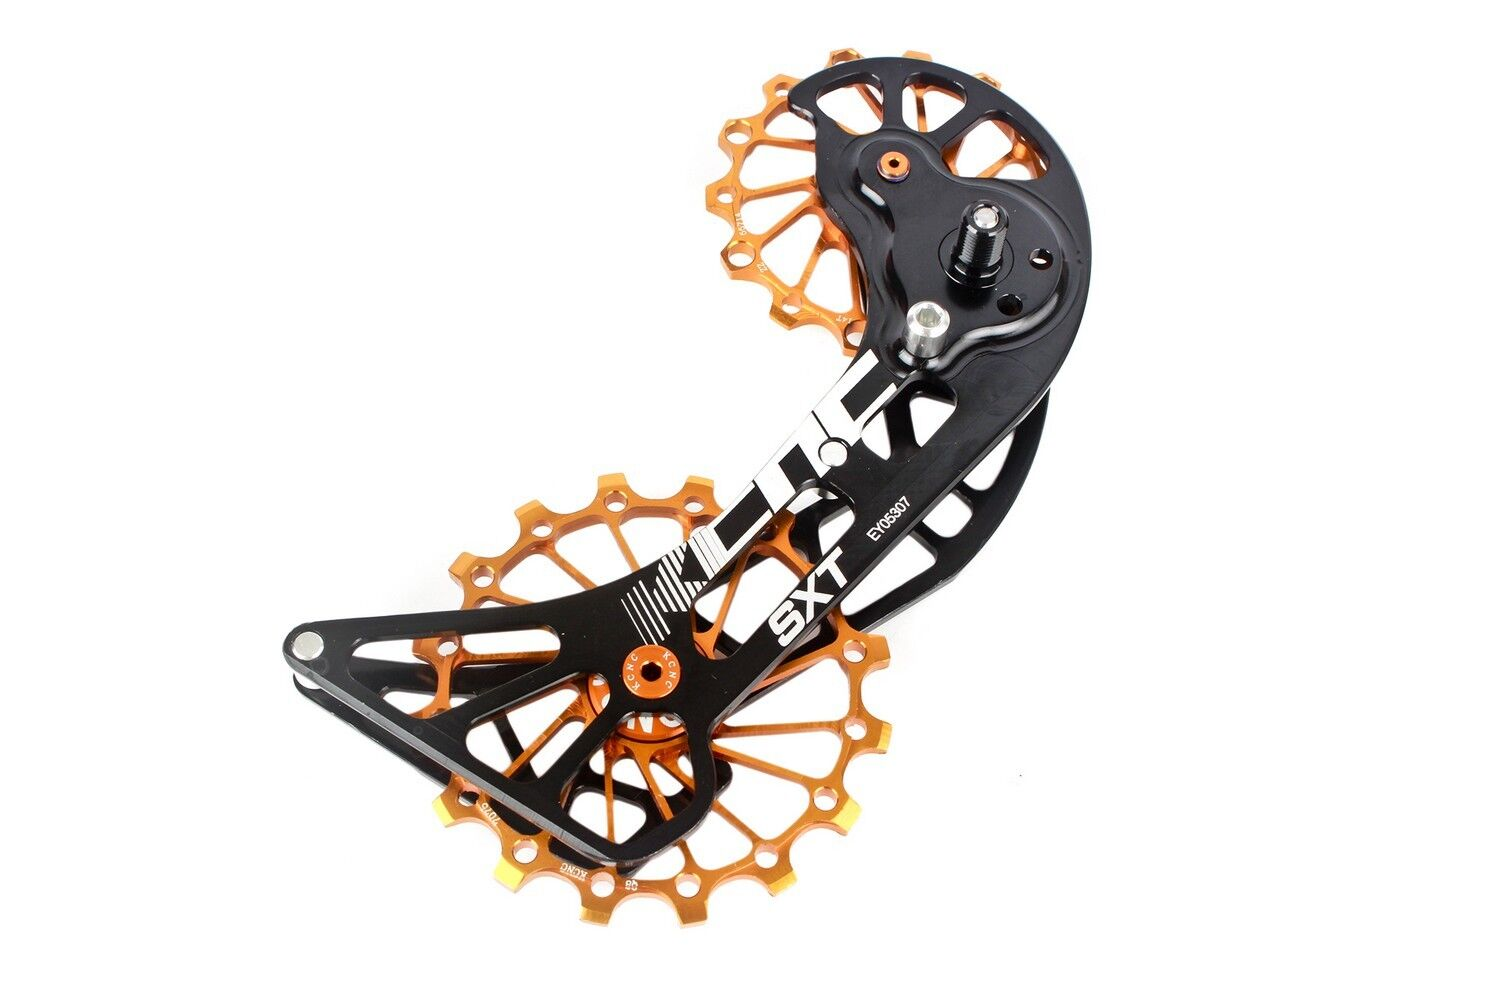 KCNC SXT MTB Cycling Bike Oversized Pulley Cage for  Shimano M9000 M8000 gold  buy cheap